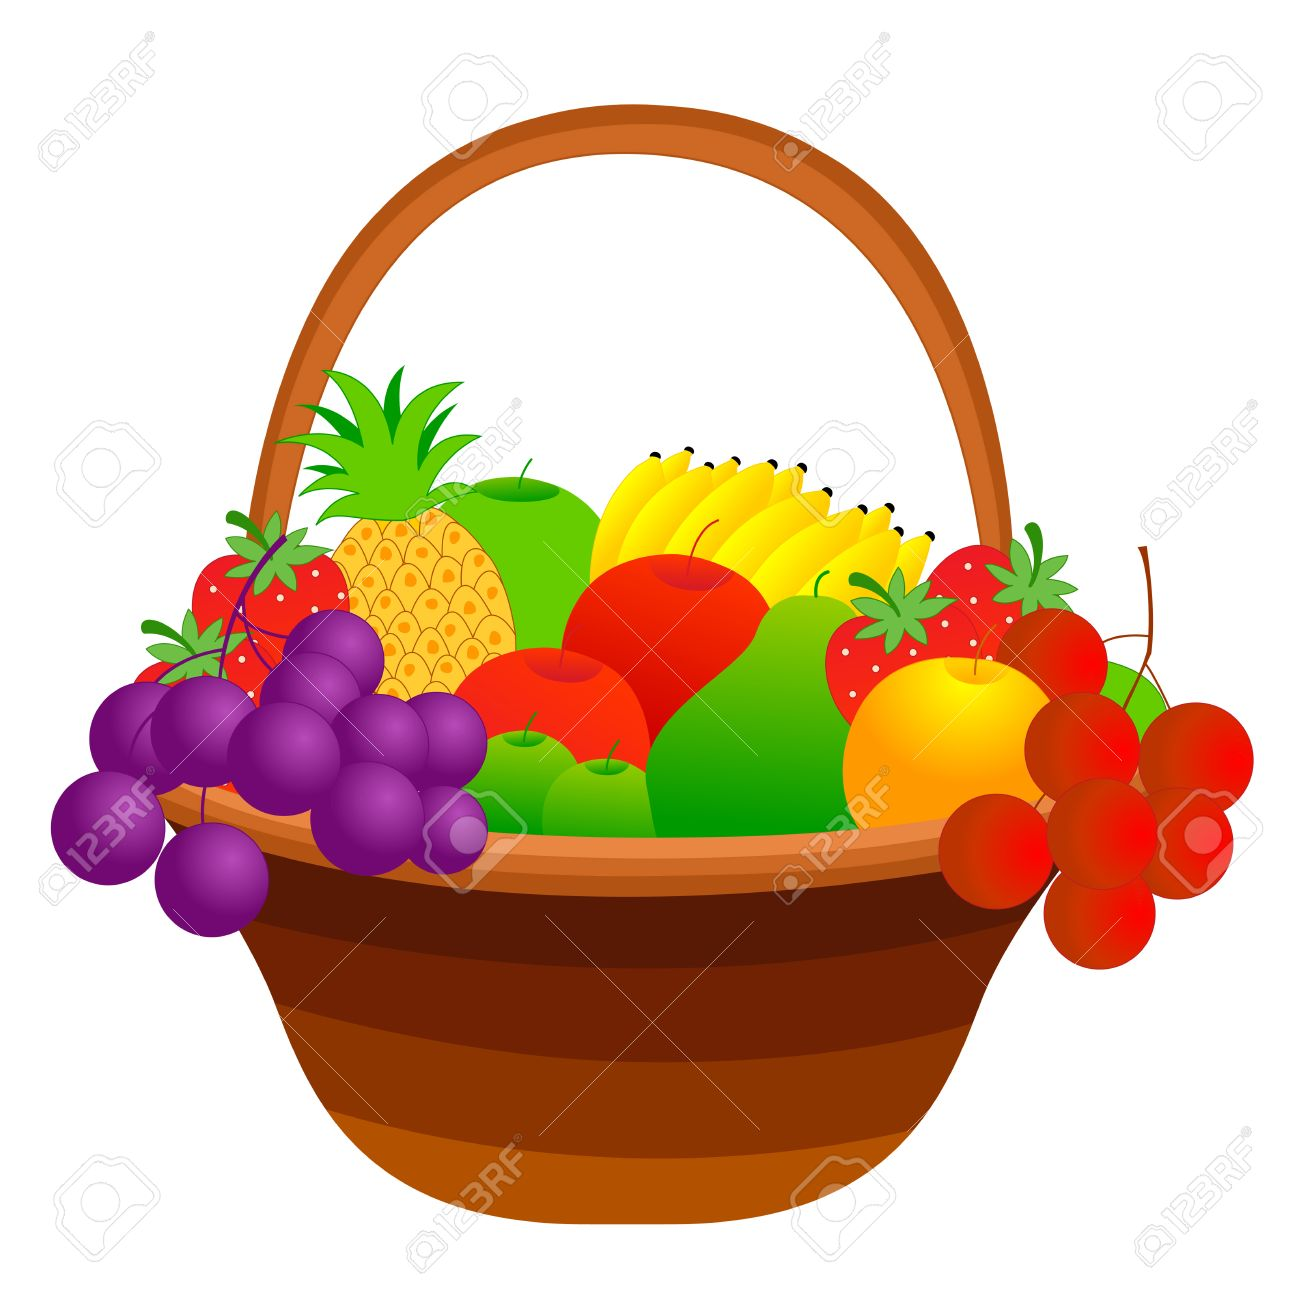 Fruit Basket Clipart 17.